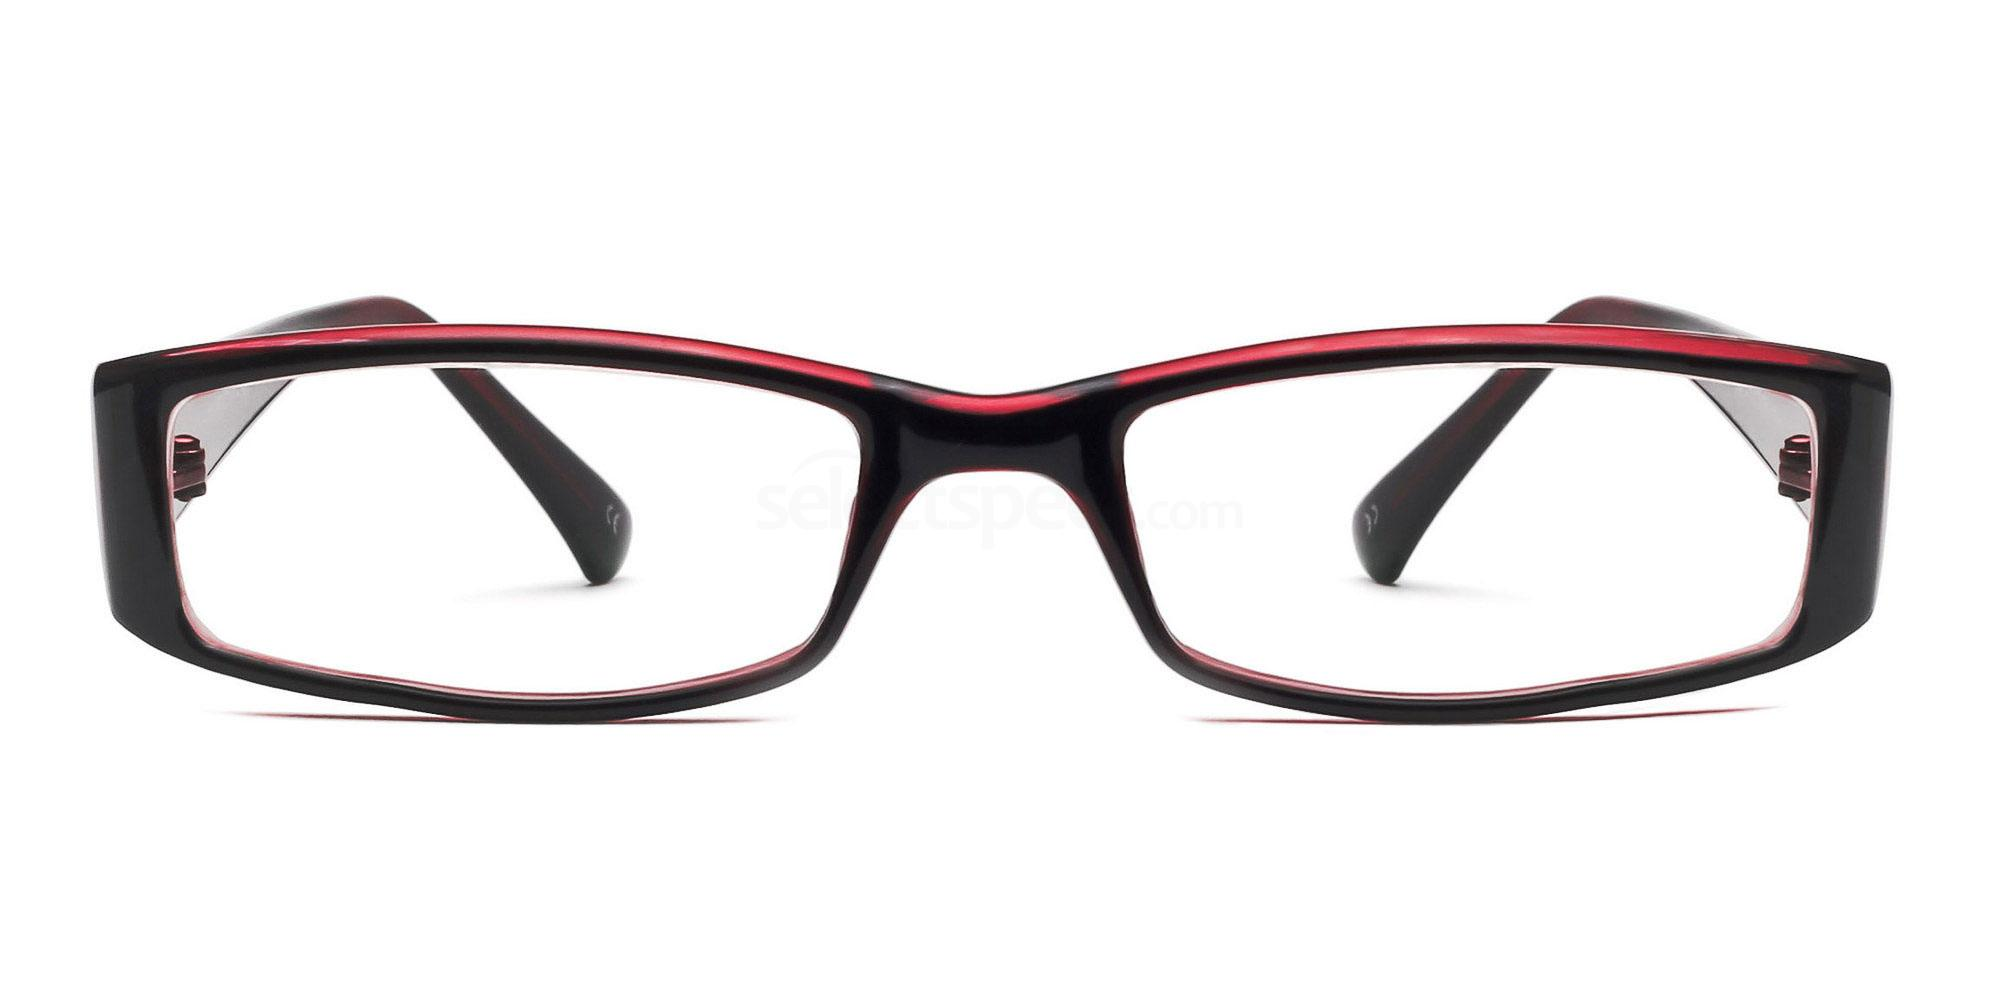 C38 P2251 - Black and Red Glasses, SelectSpecs